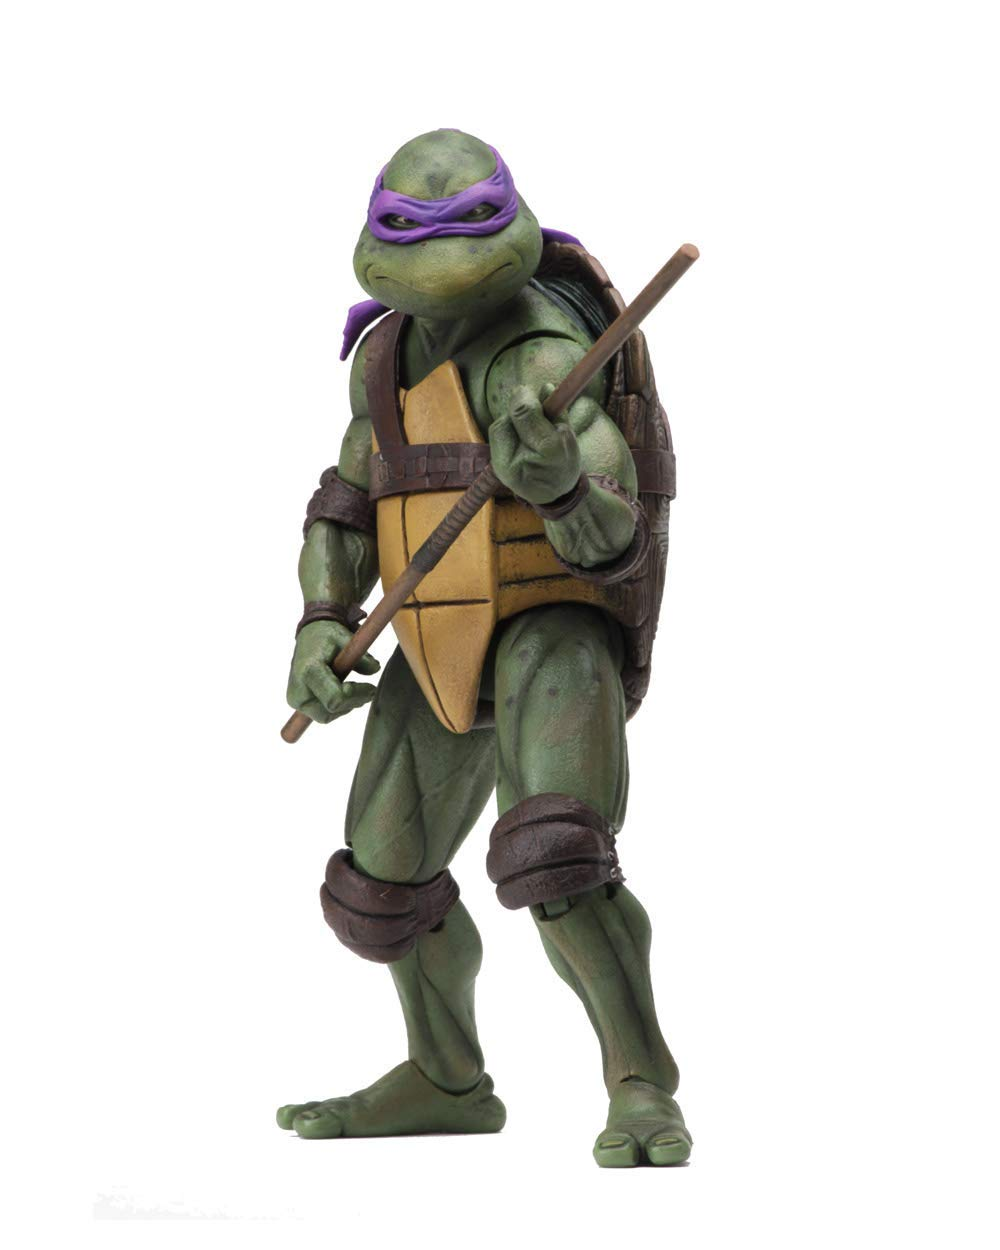 NECA-TOYS in Hand Original Sealed Teenage Mutant Ninja Turtles TMNT 90s Movie Collectible Action Figure 1 PC Only